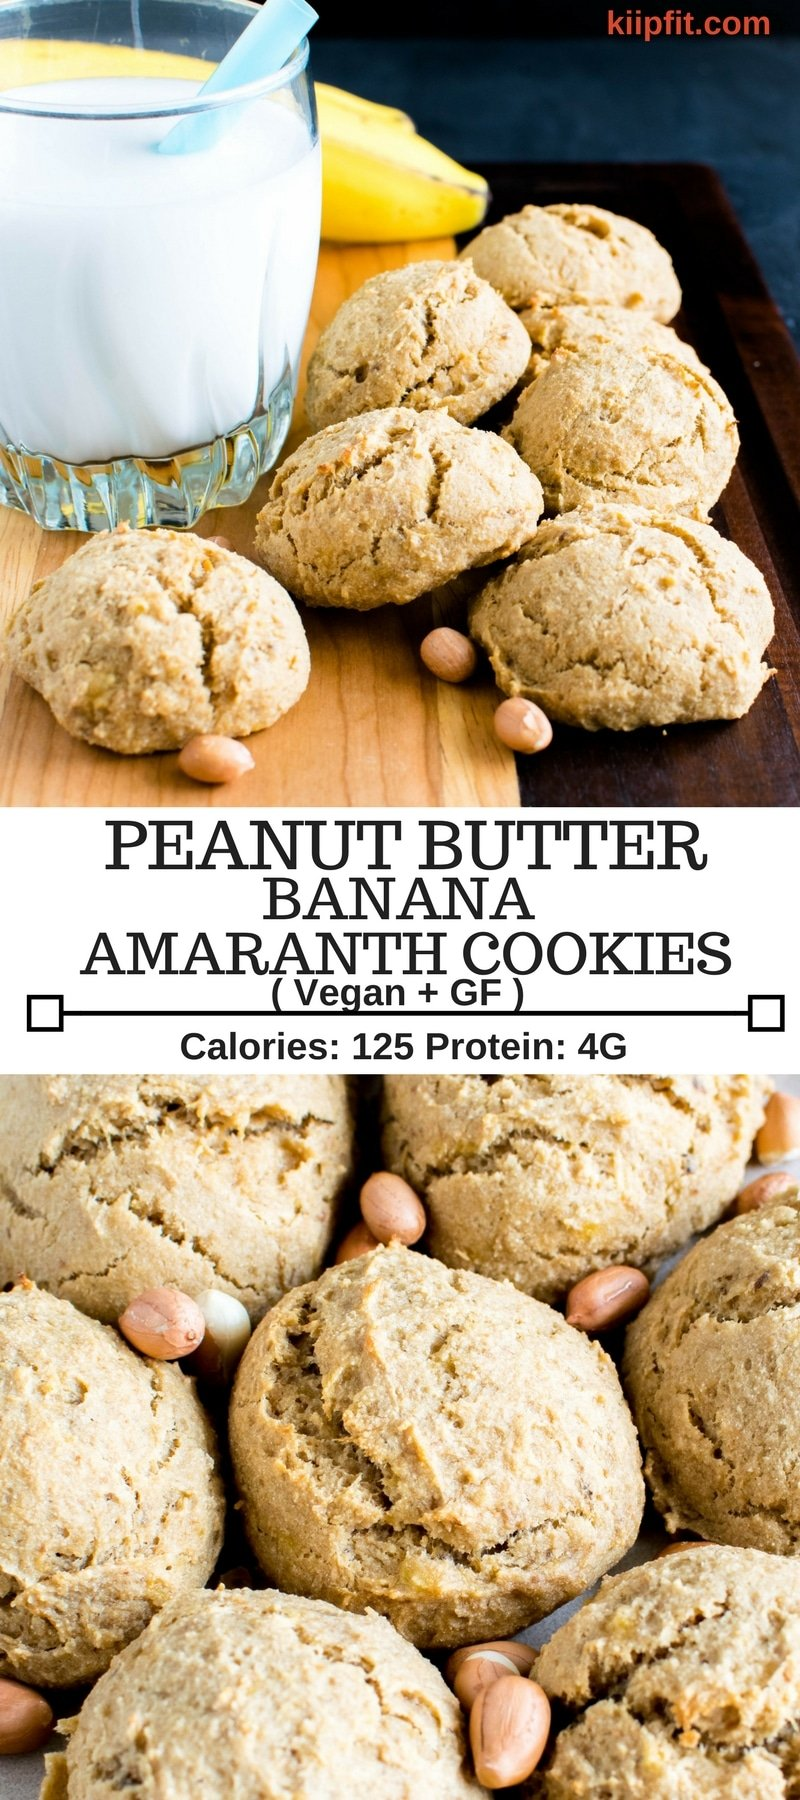 These vegan and gluten free Peanut Butter Banana Amaranth Cookies are a perfect choice to satisfy sweet tooth in a nutritious way. These cookies are high in fiber and protein along with delicious flavors.